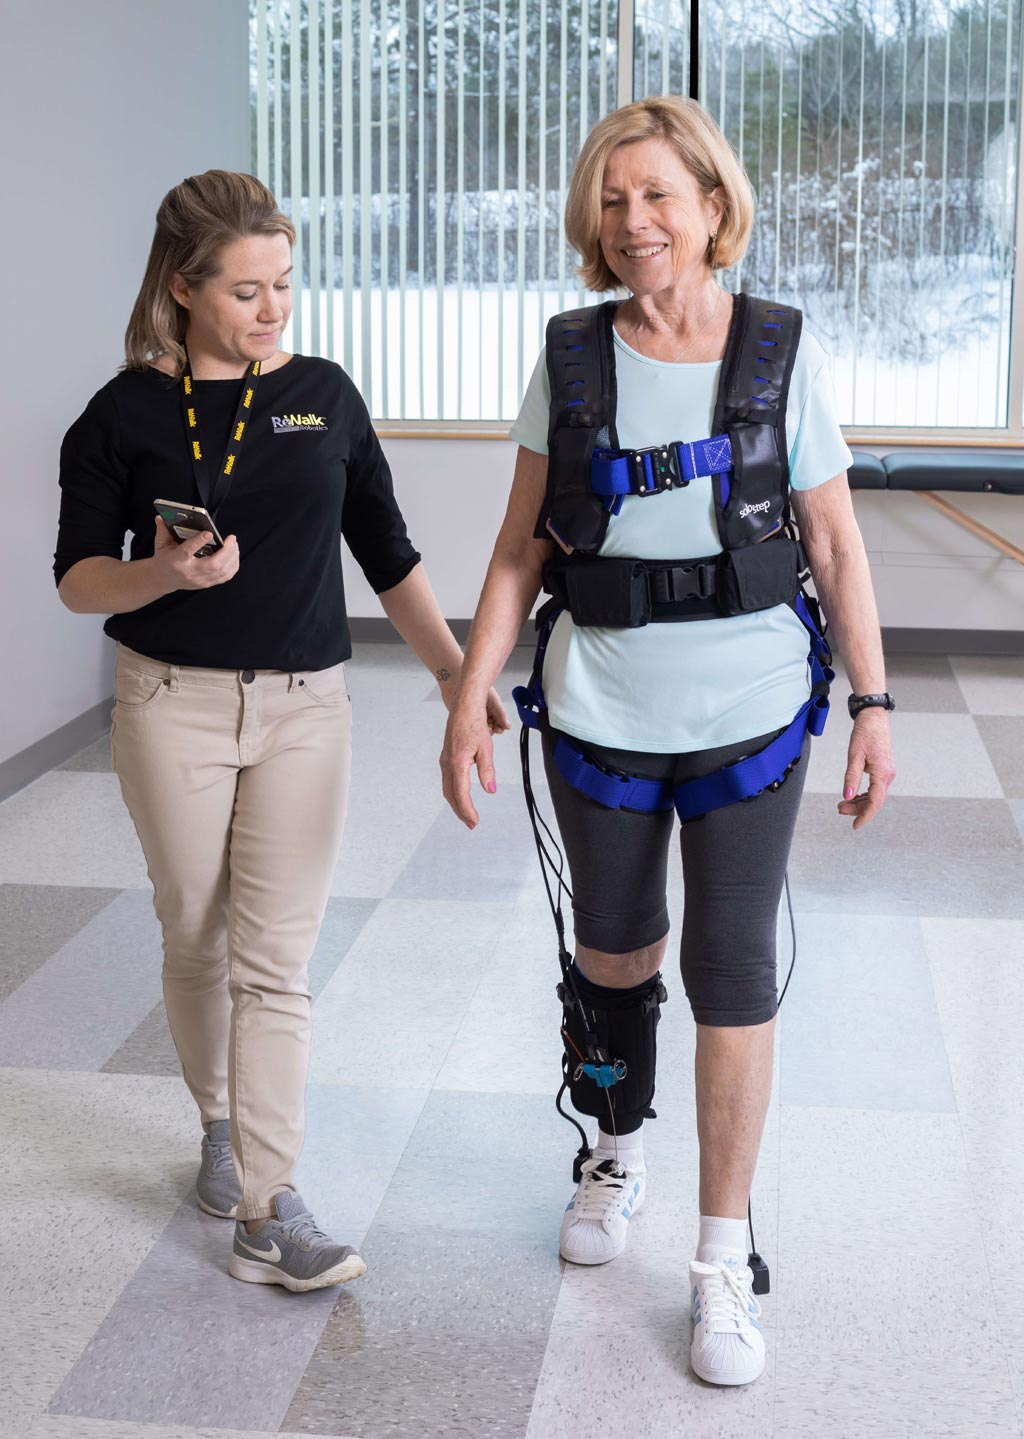 Image: A gait training device helps stroke survivor's rehabilitation (Photo courtesy of ReWalk).